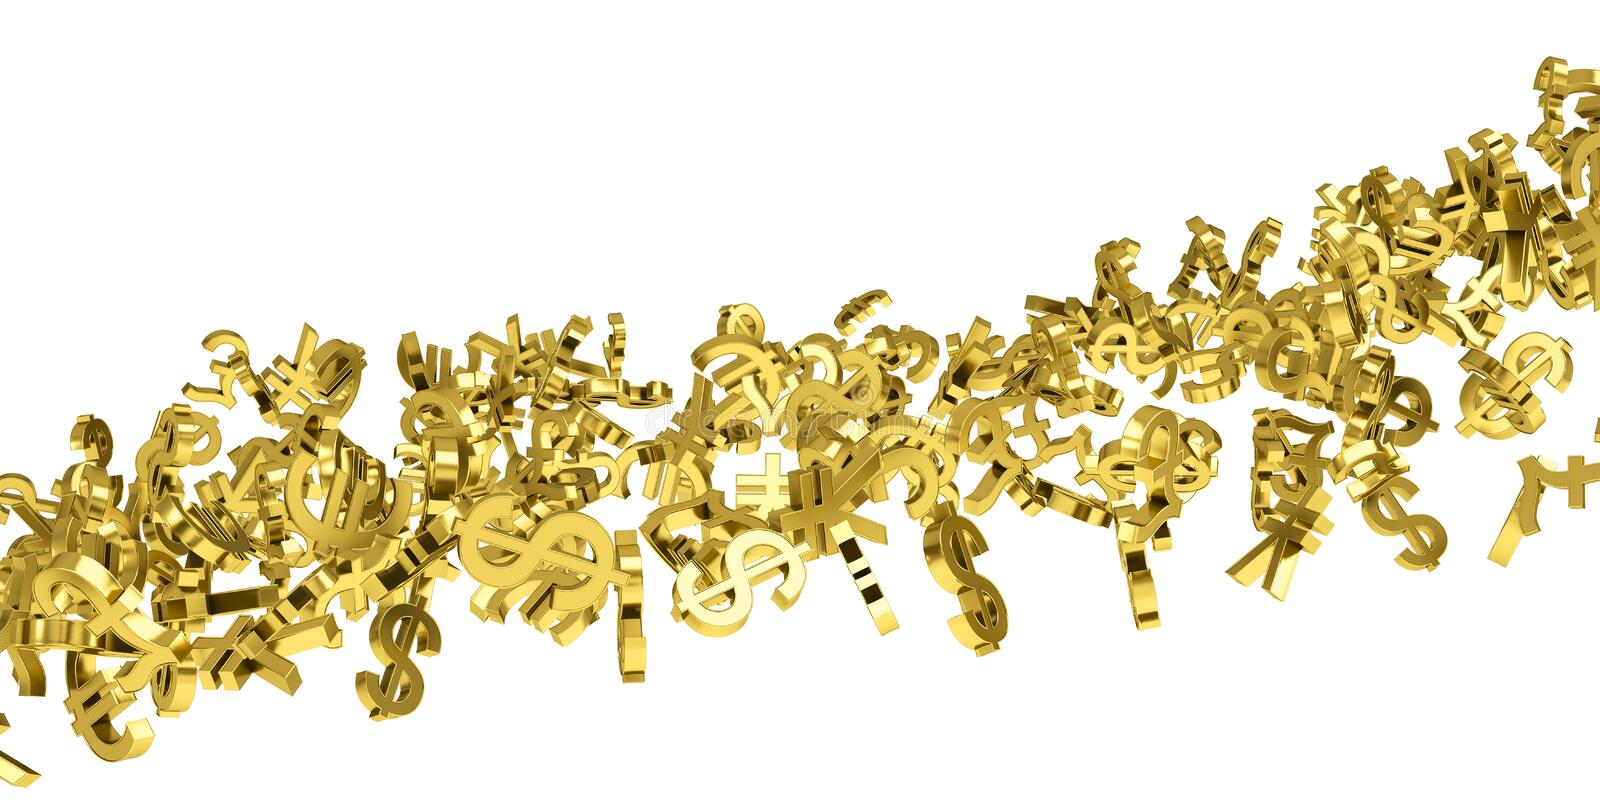 Download The Flow Of Gold Currency Symbols Royalty Free Stock Image - Image: 28874206